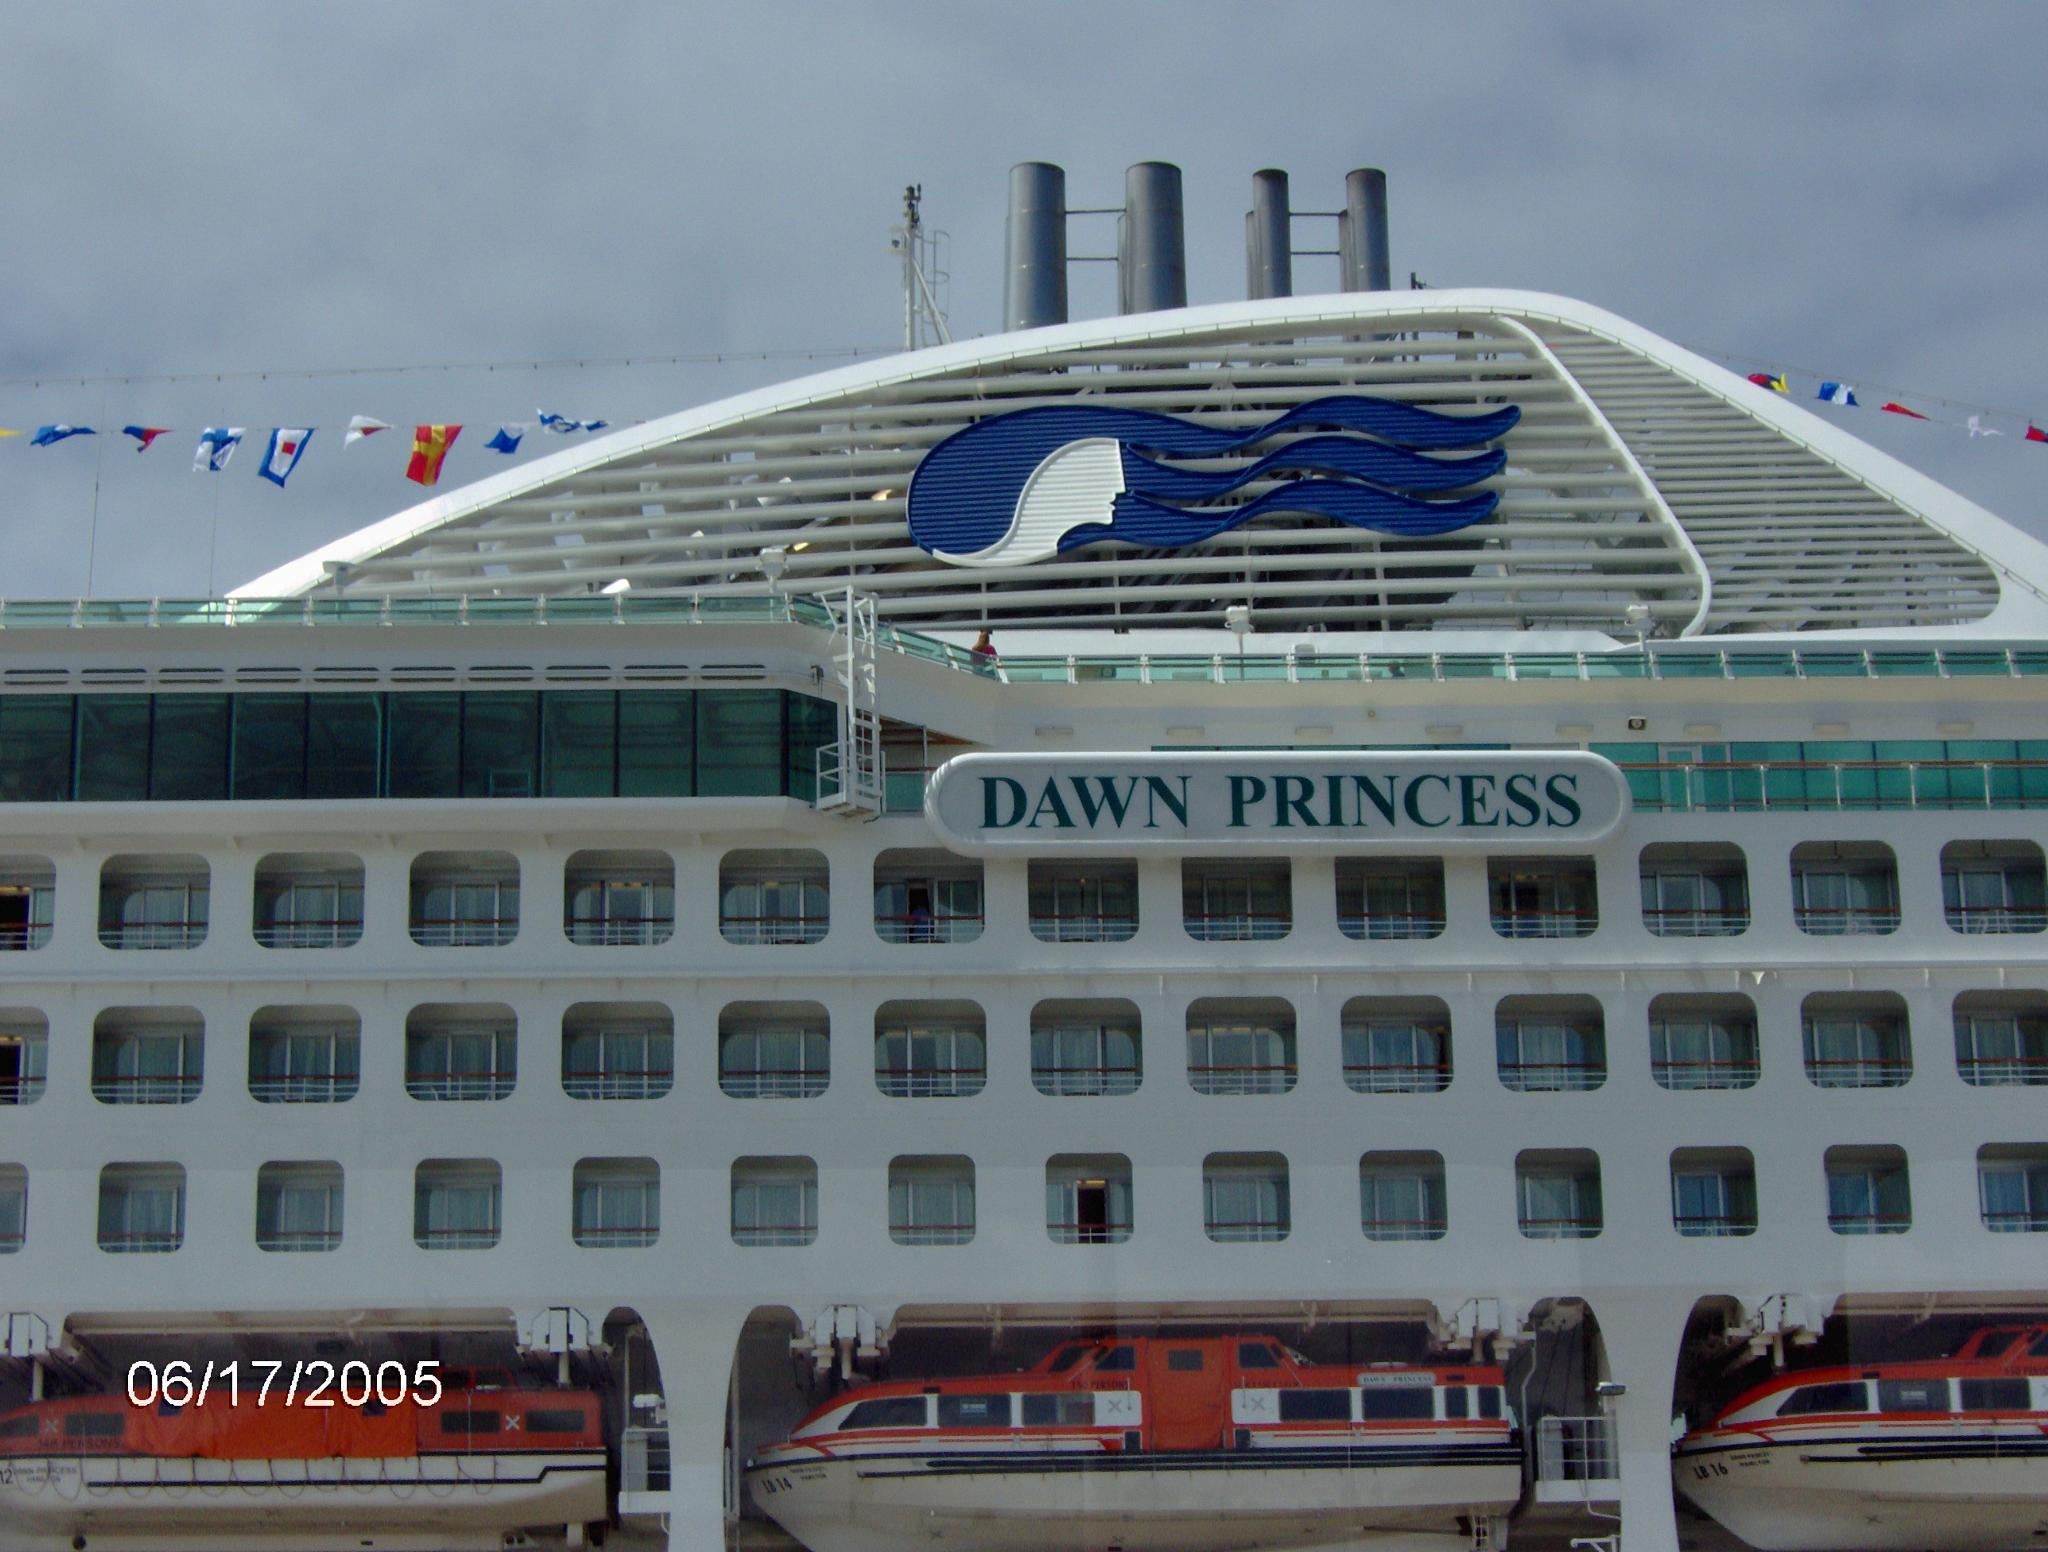 Dawn Princess by seshac